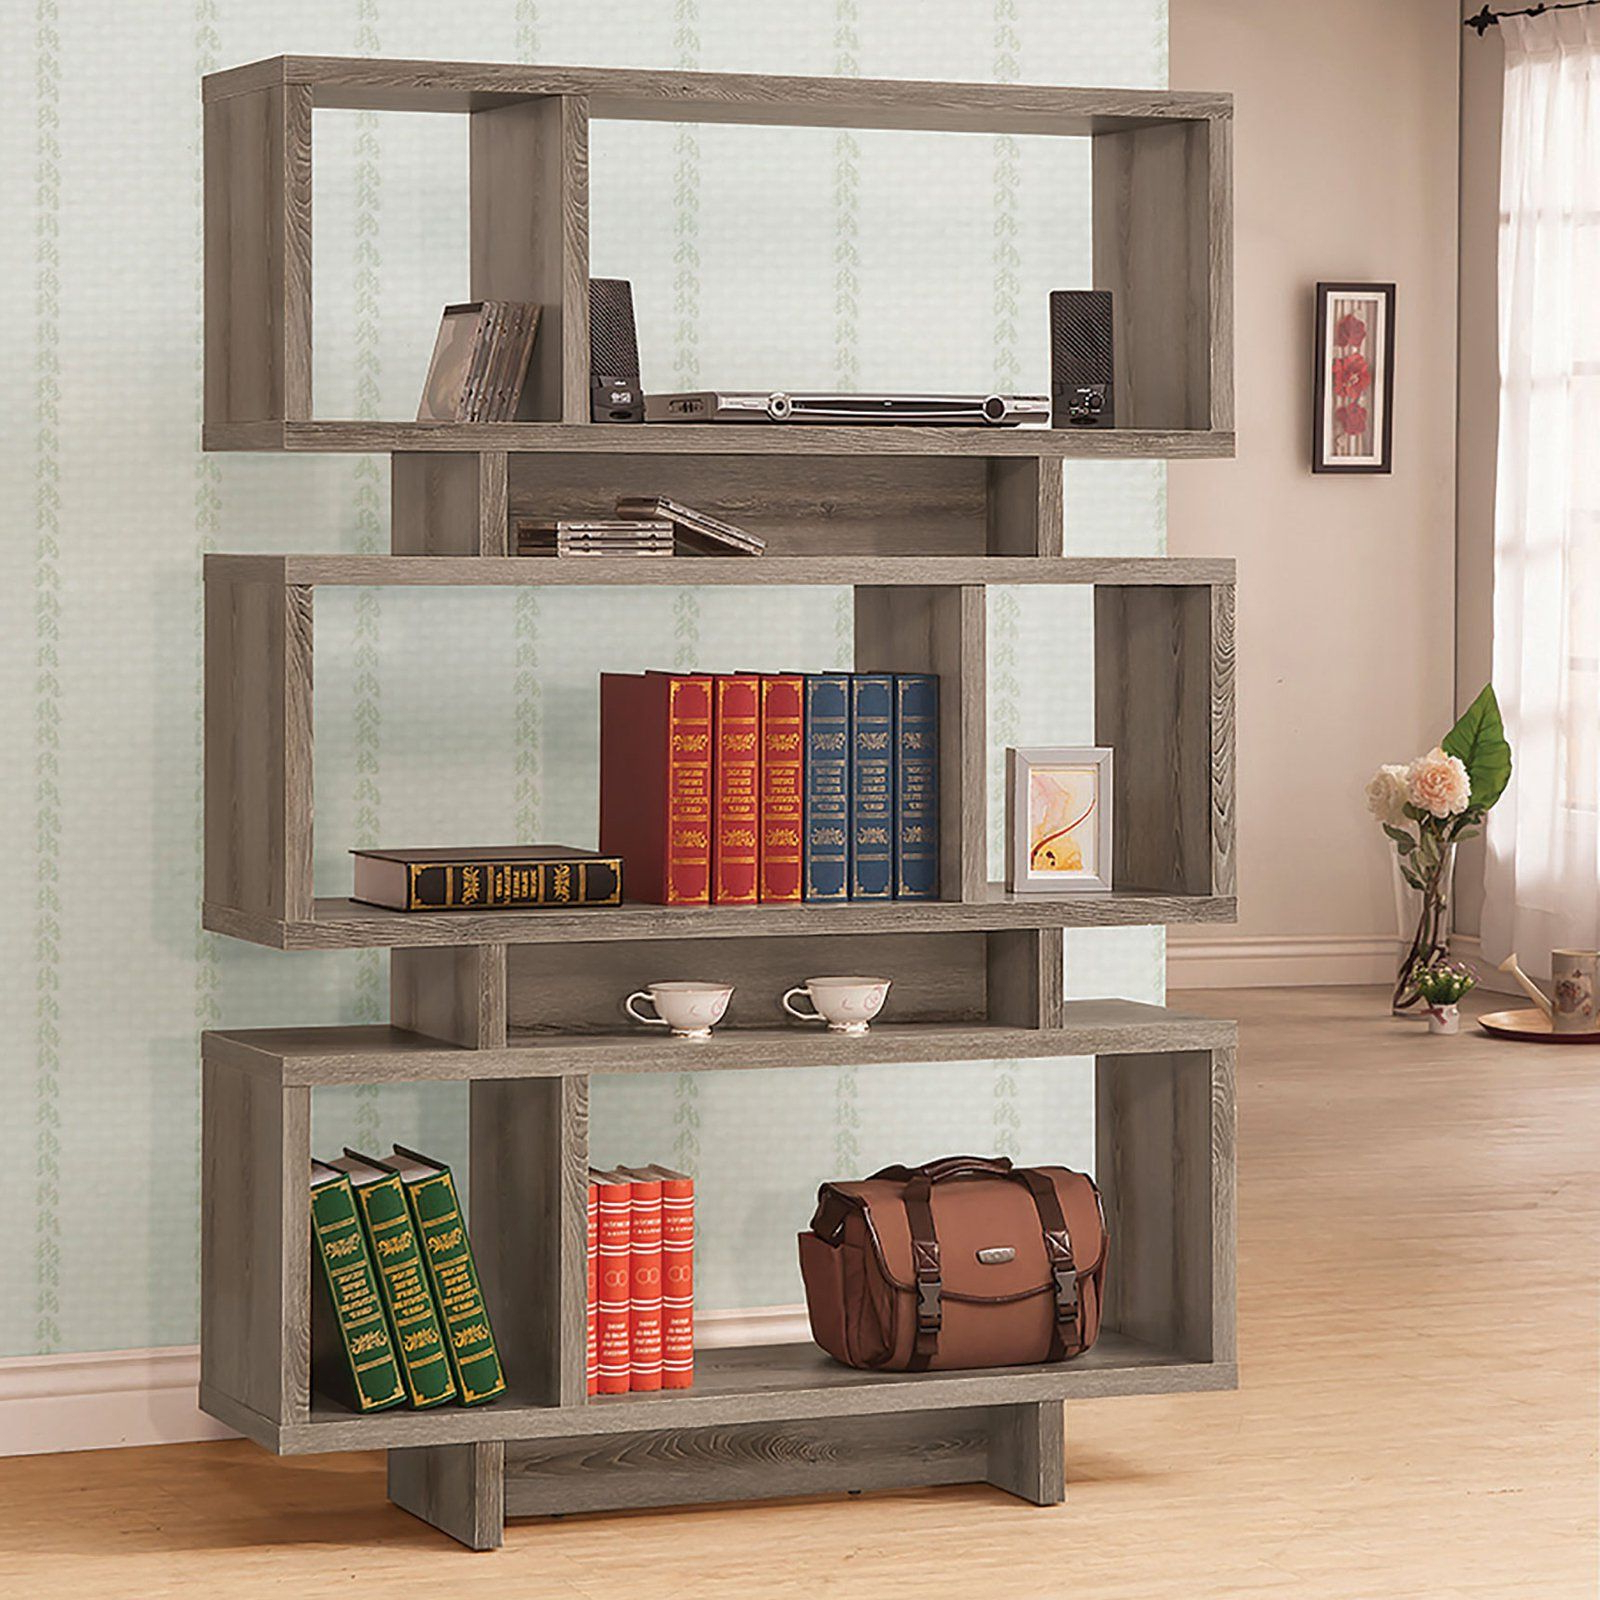 Coaster Furniture Weathered Gray 3 Tier Bookcase (View 4 of 20)